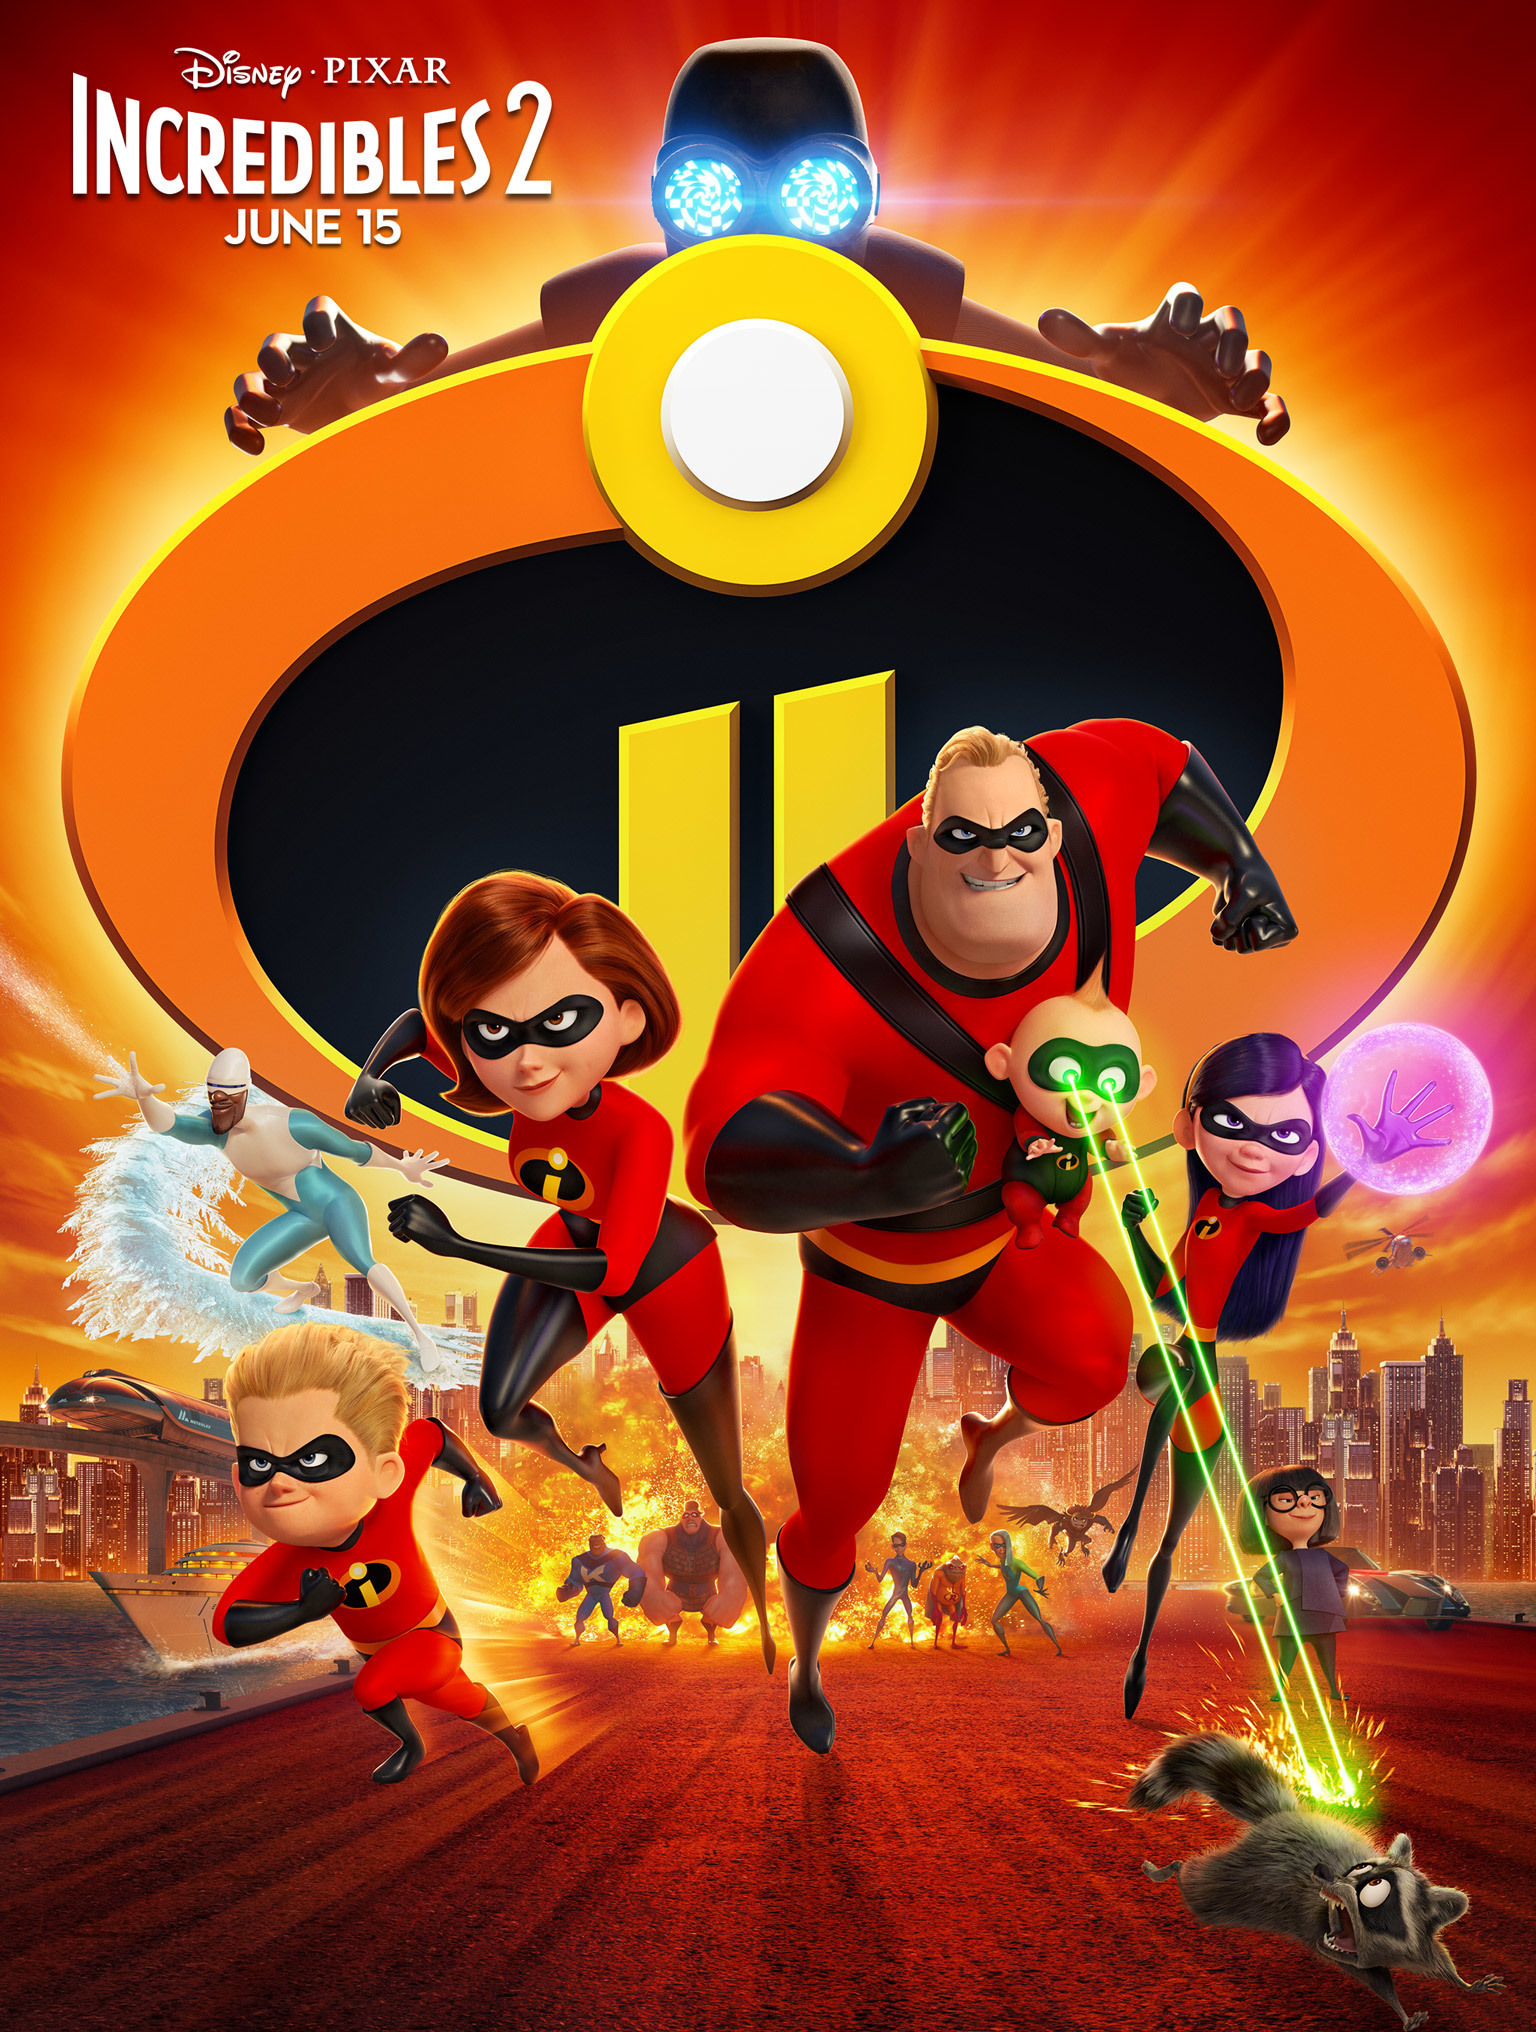 Watch the brand new trailer for Disney/Pixar's Incredibles 2, coming to theatres in 3D June 15!